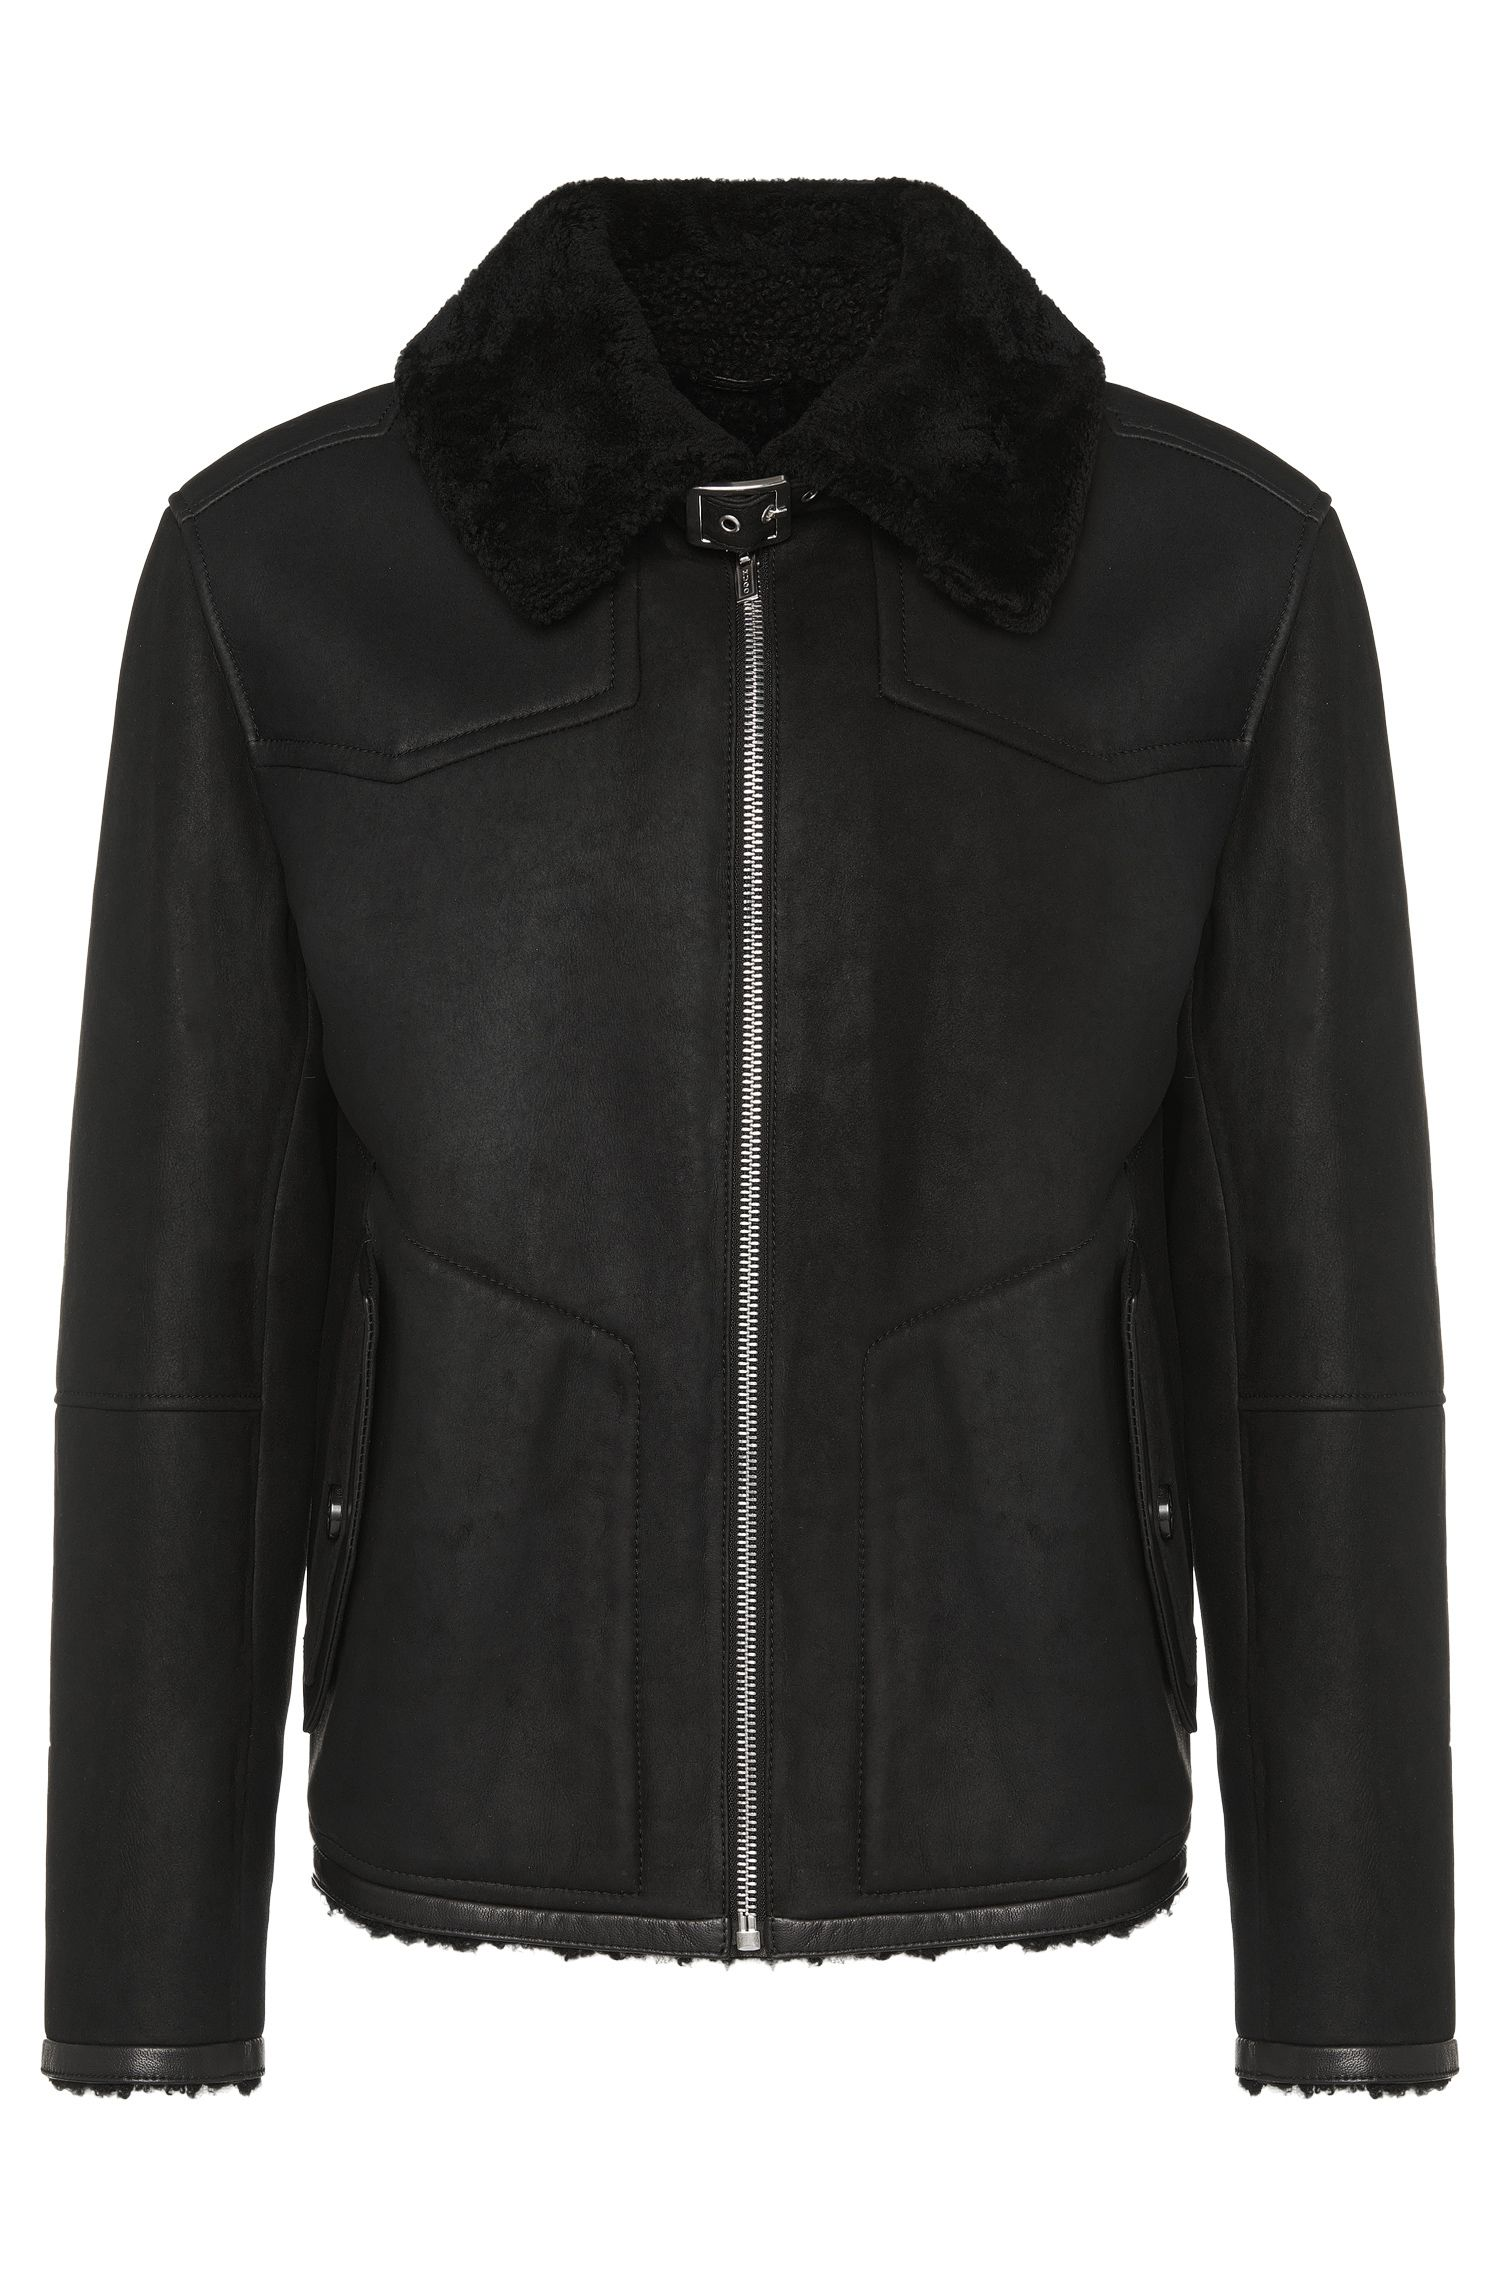 'Lean' | Lambskin Shearling Collar Jacket